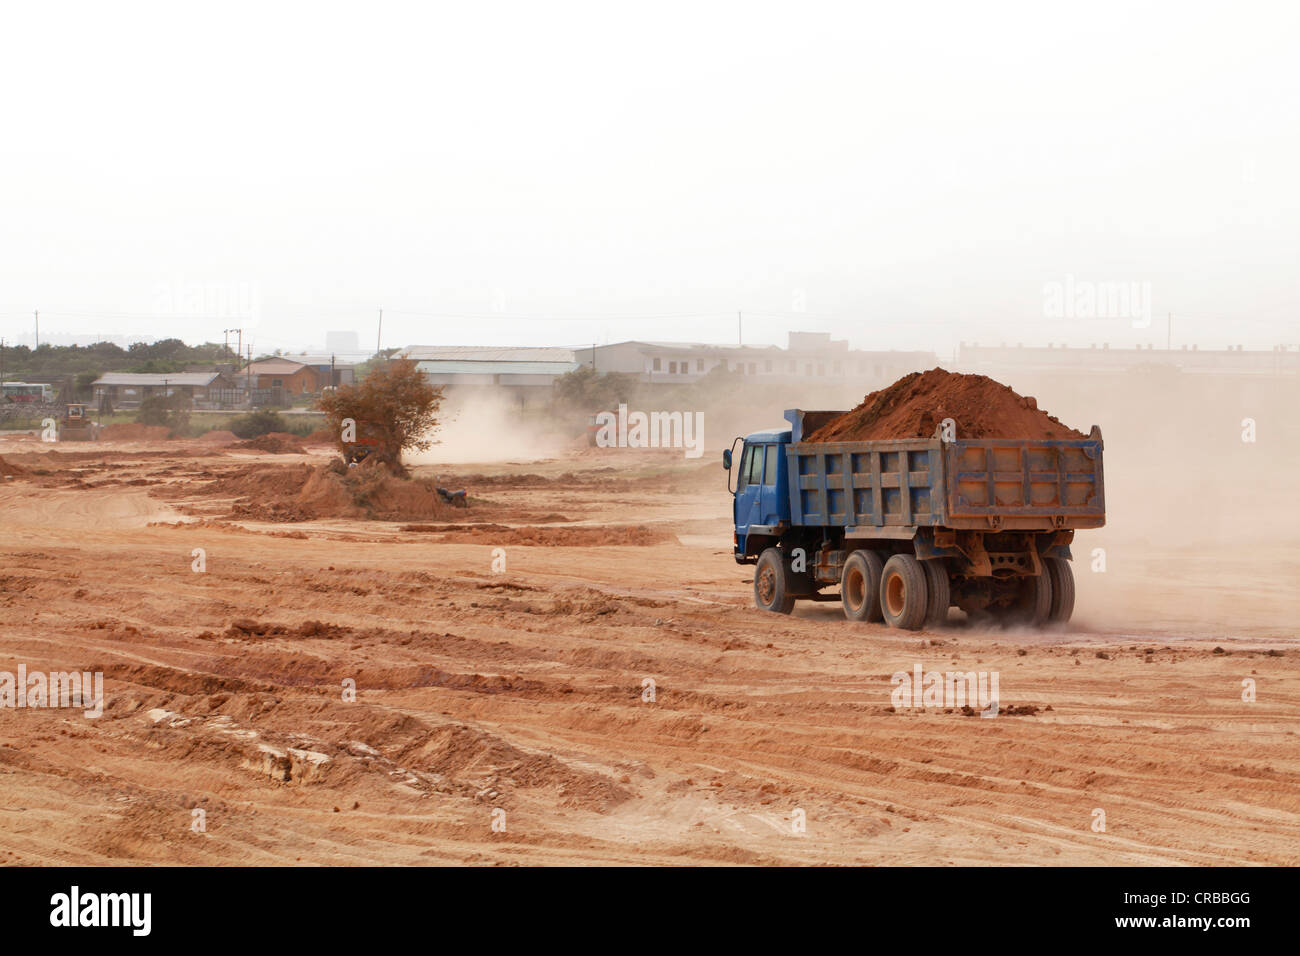 Truck on a construction site in Xiamen, also known as Amoy, Fujian province, China, Asia - Stock Image